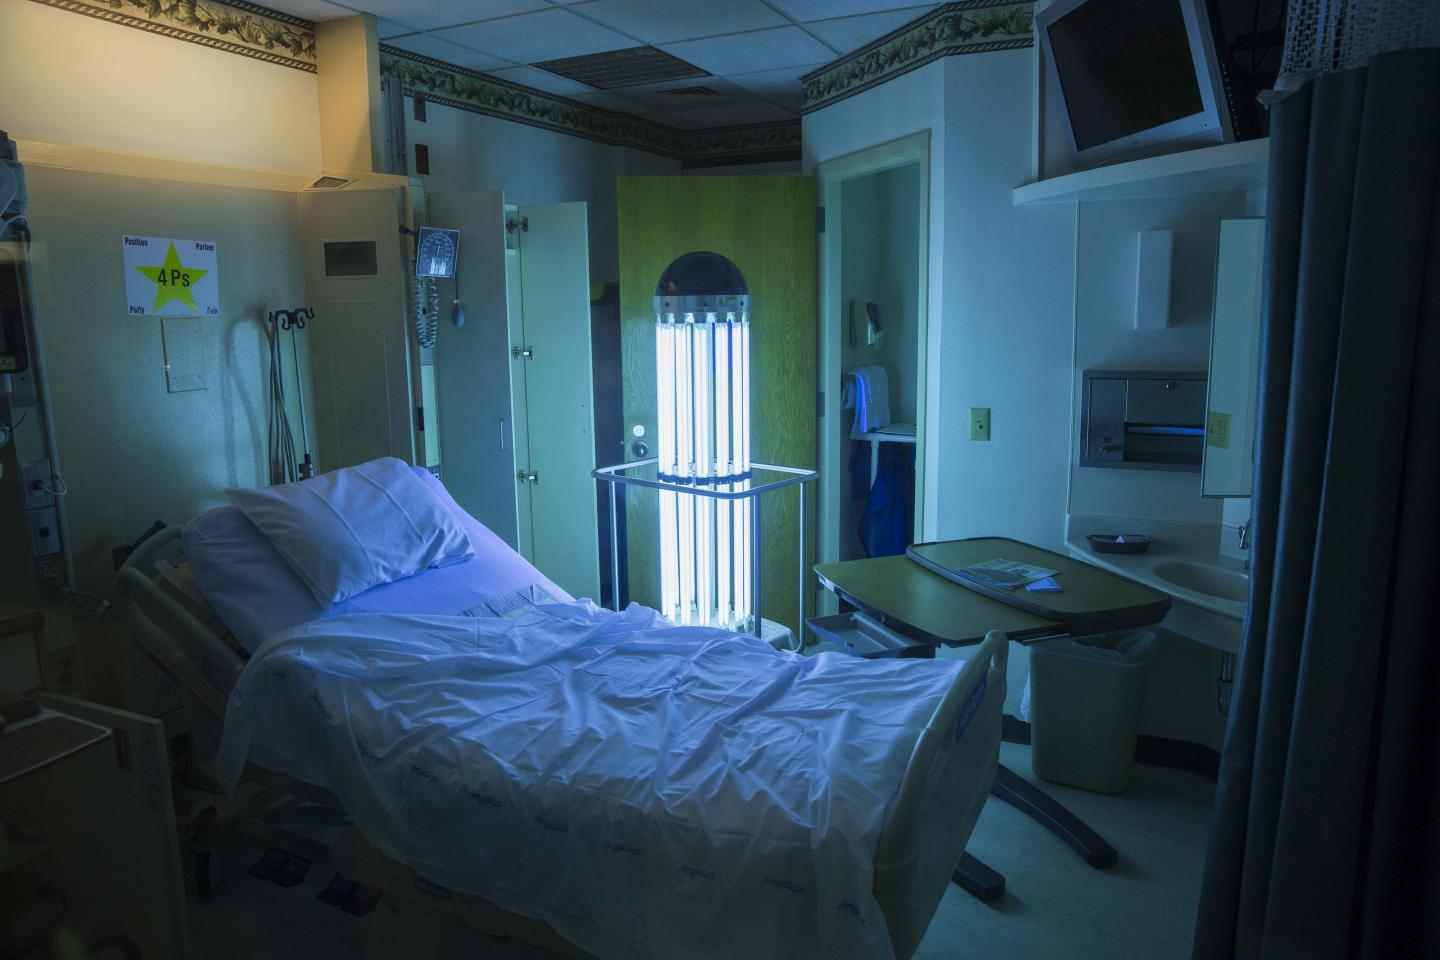 UV Light Can Aid Hospitals' Fight to Wipe Out Drug-Resistant Superbugs (1 of 2)